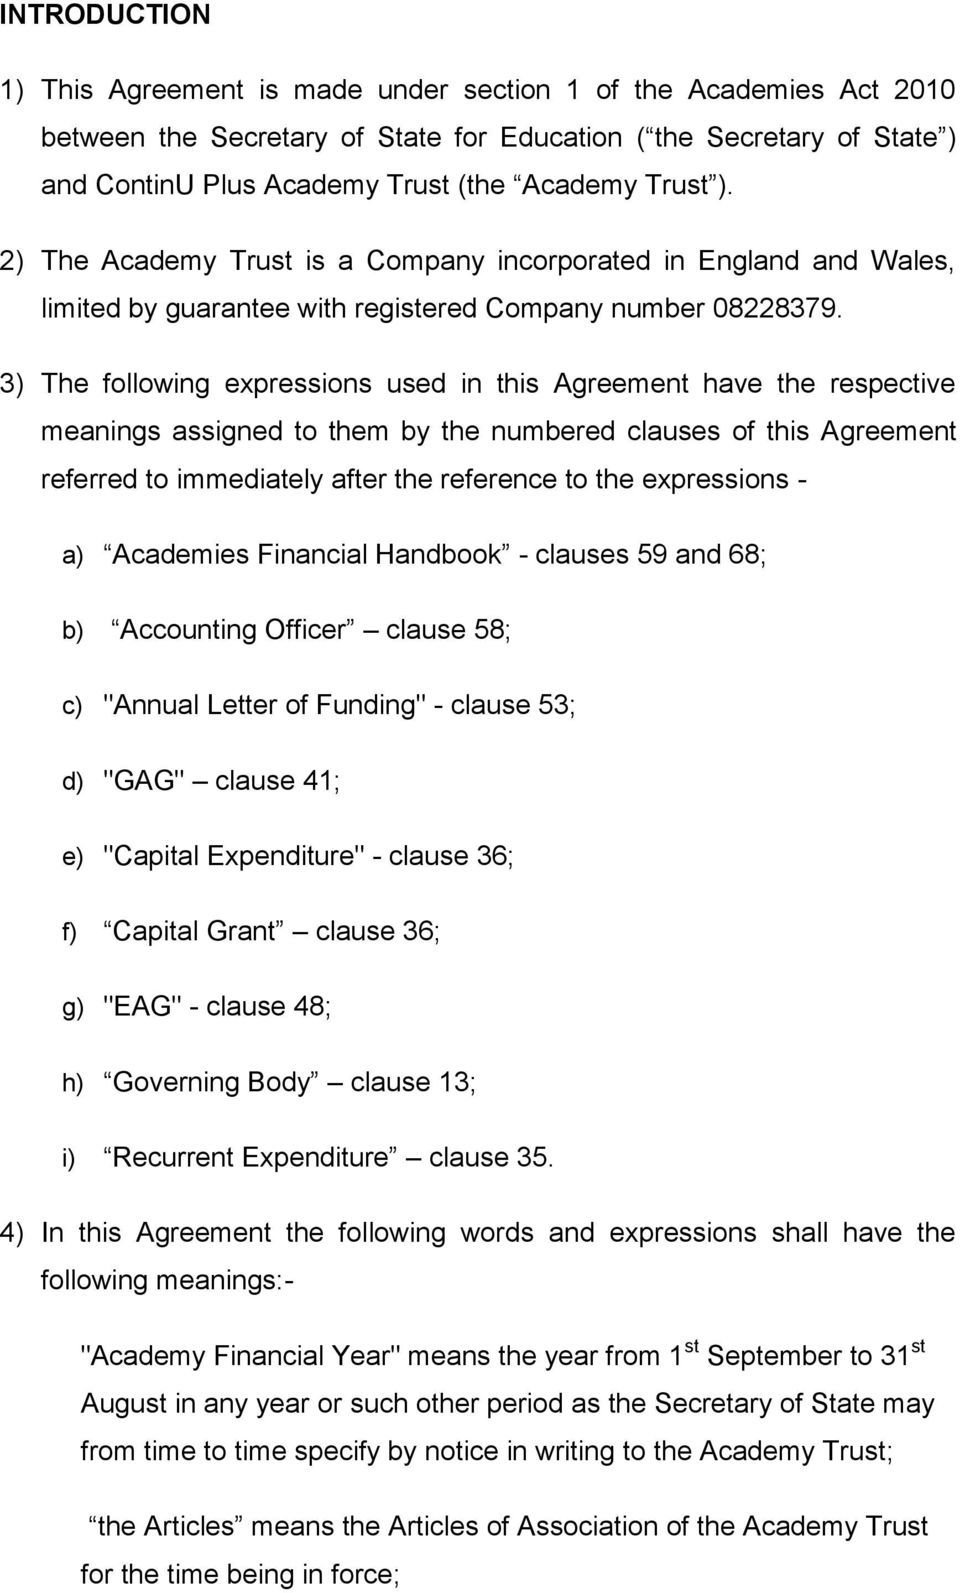 3) The following expressions used in this Agreement have the respective meanings assigned to them by the numbered clauses of this Agreement referred to immediately after the reference to the